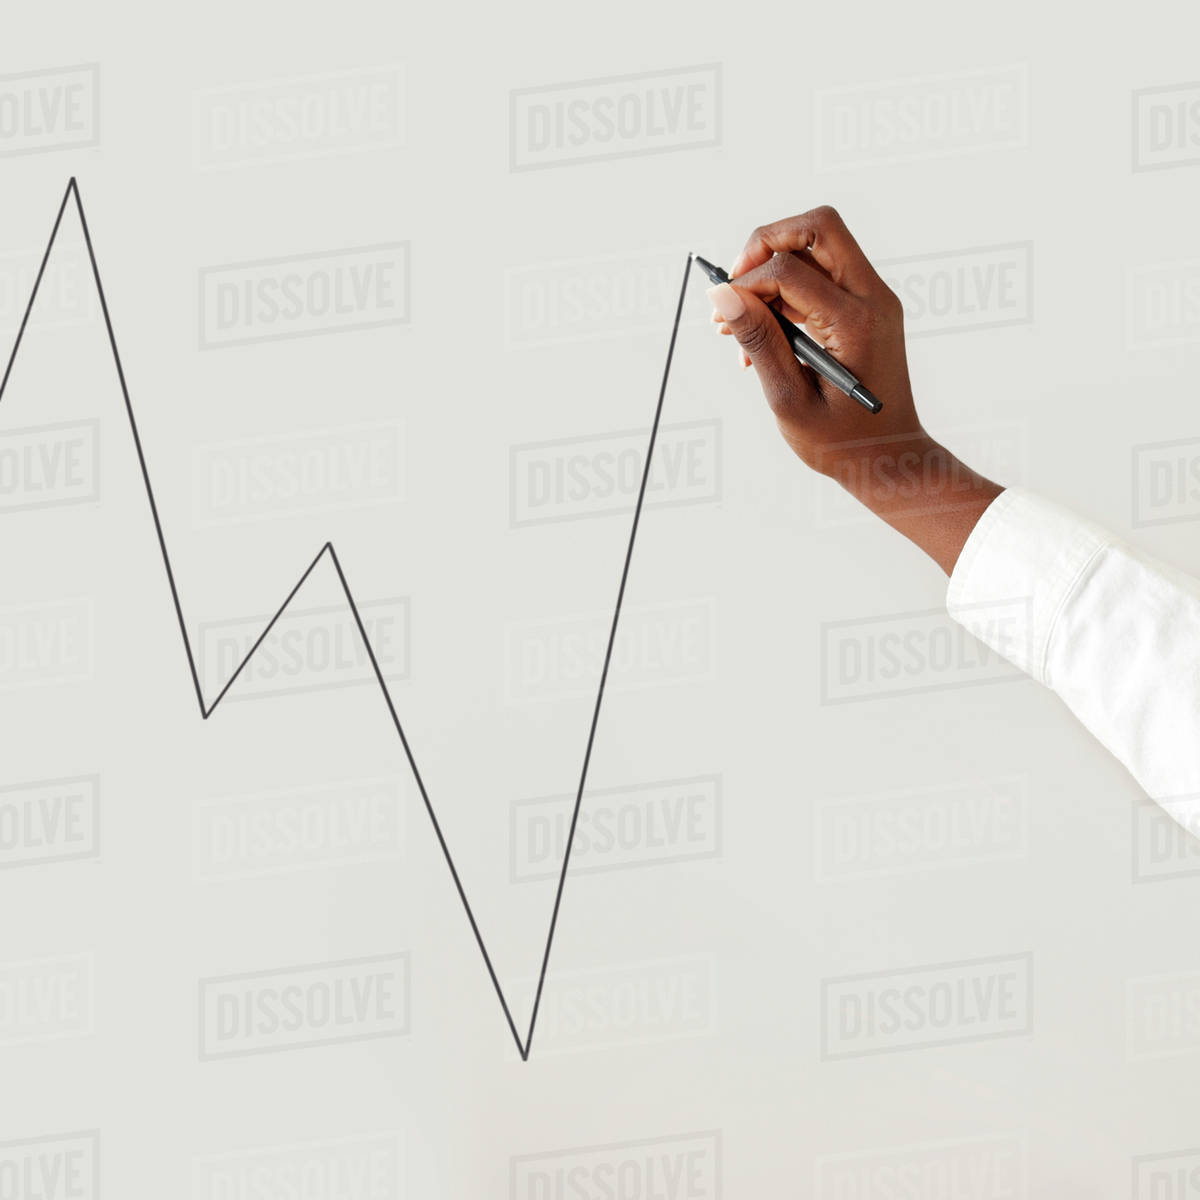 close up of woman s hand drawing chart stock photo dissolve